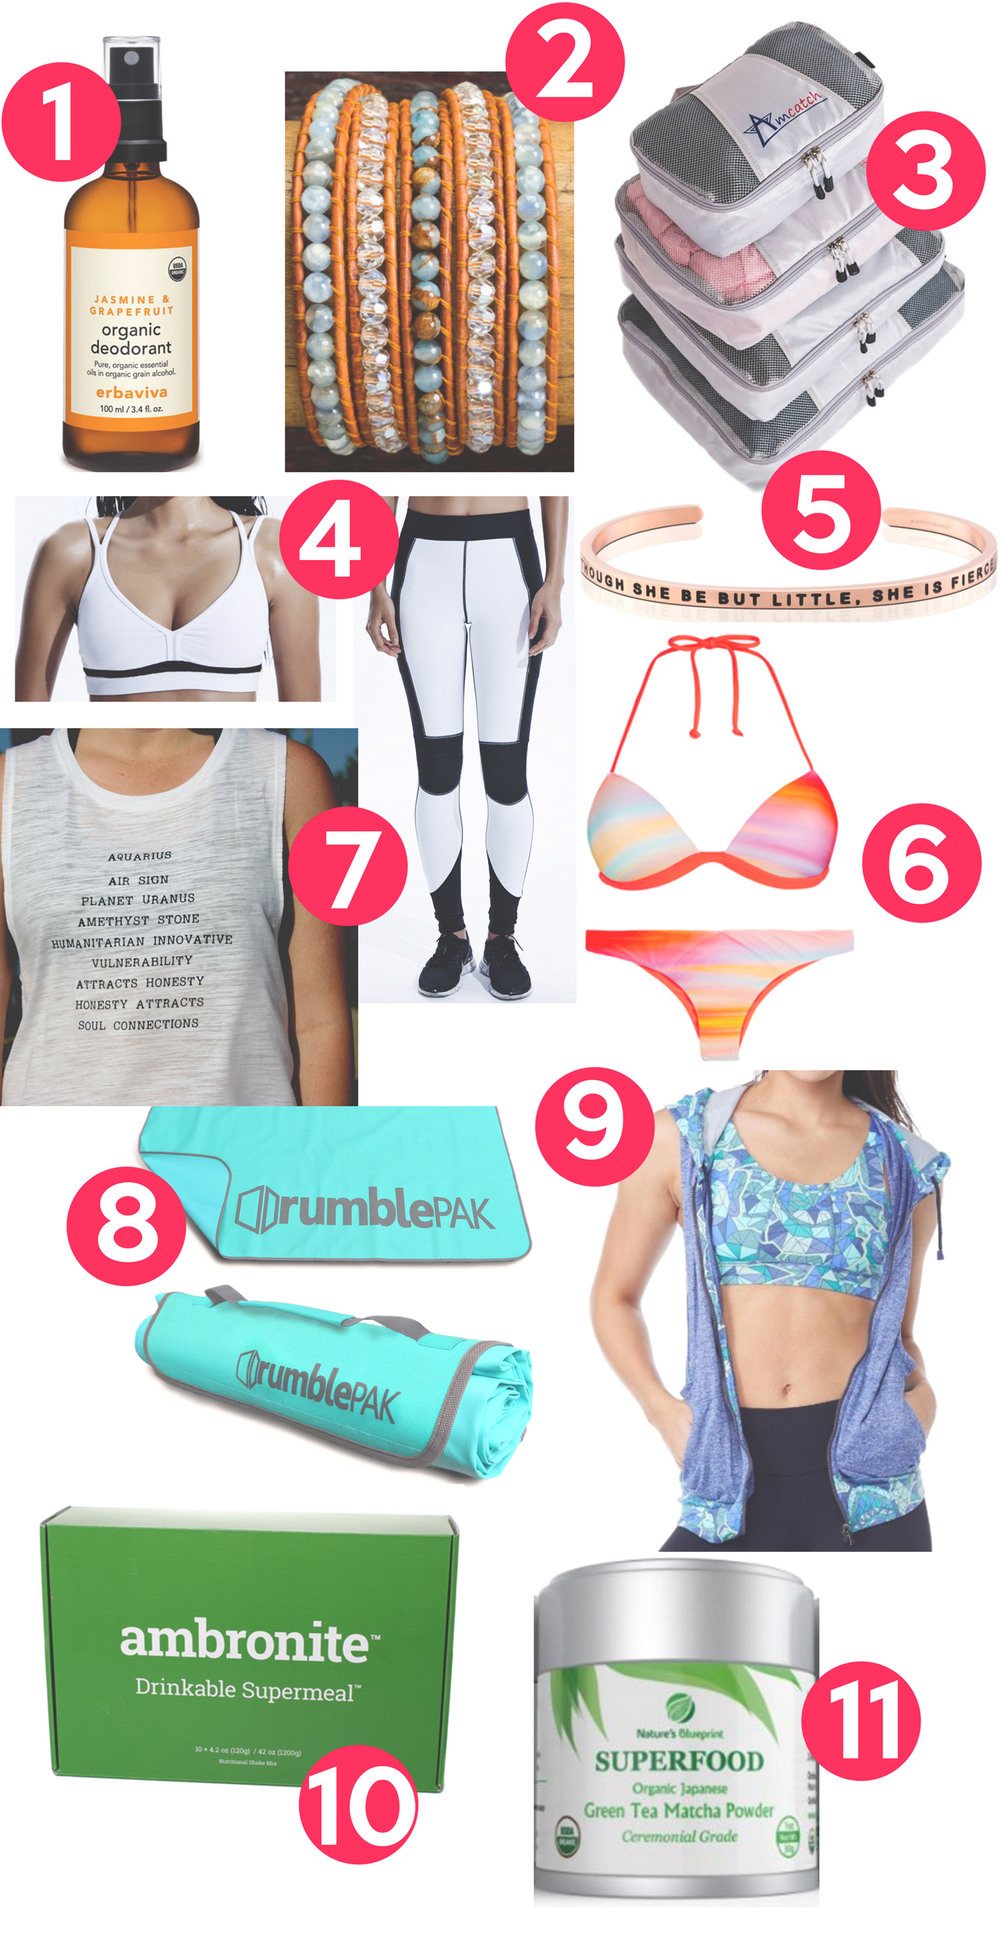 Pin now and enter to win - Yoga retreat packing guide giveaway